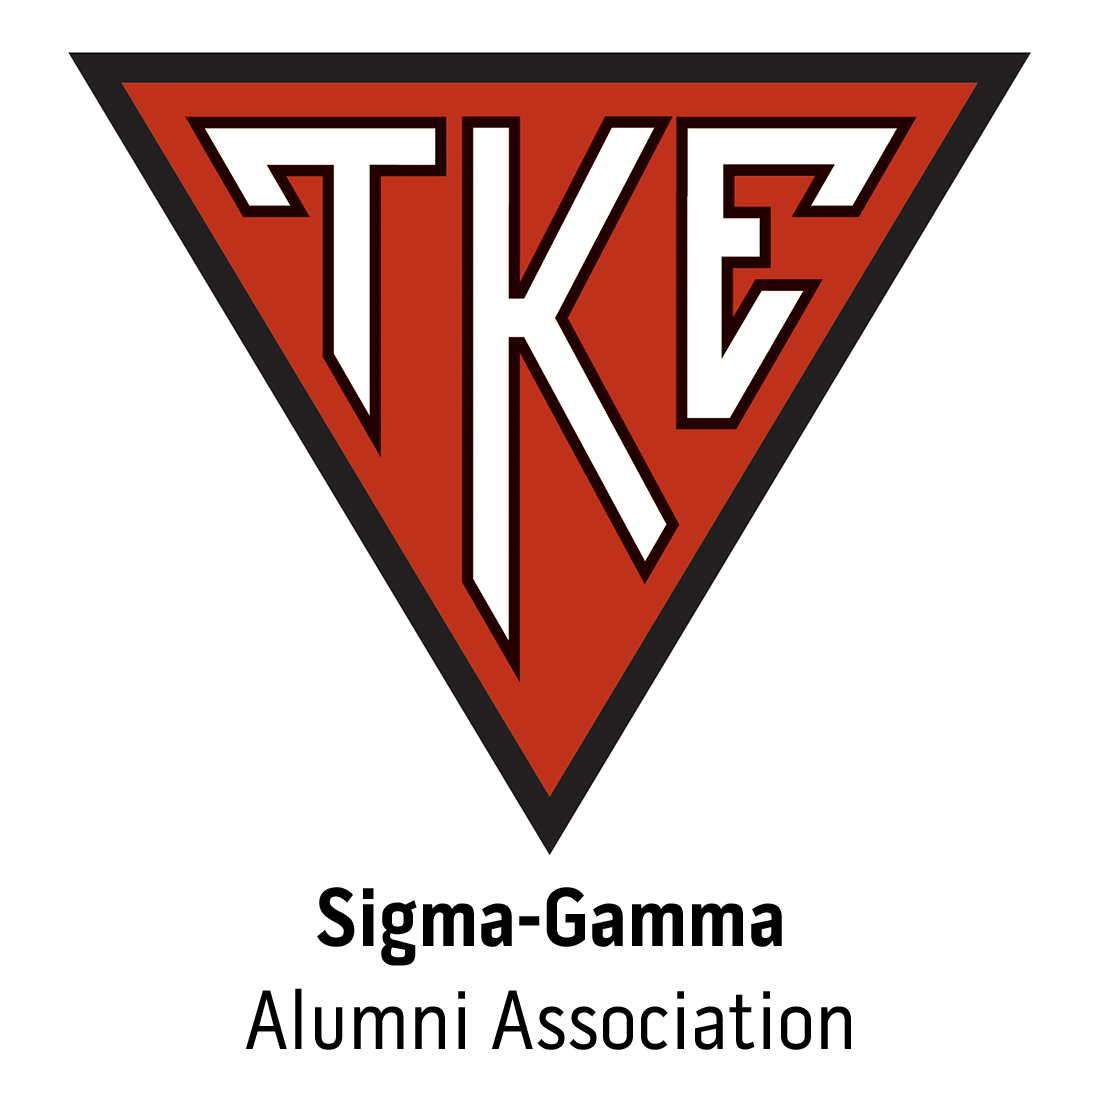 Sigma-Gamma Alumni Association Alumni at State University of New York at Plattsburgh